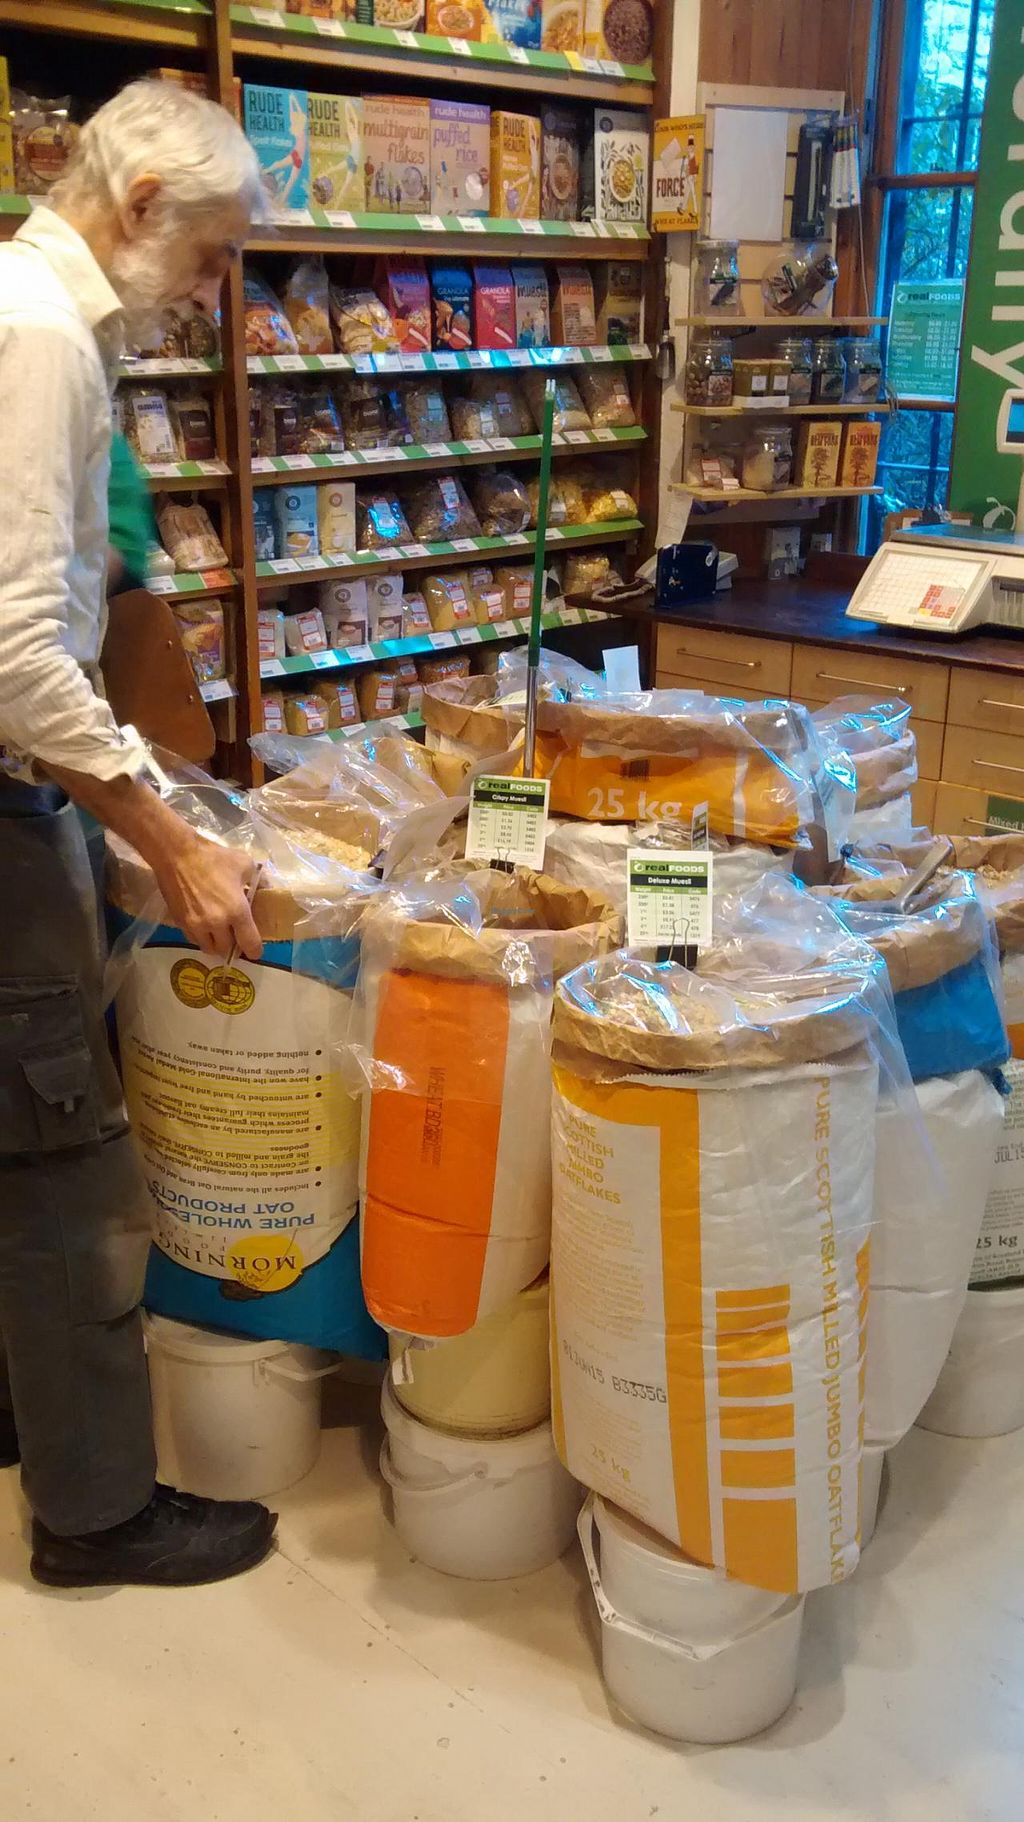 """Photo of Real Foods  by <a href=""""/members/profile/craigmc"""">craigmc</a> <br/>Great cereals <br/> February 6, 2014  - <a href='/contact/abuse/image/1088/63794'>Report</a>"""